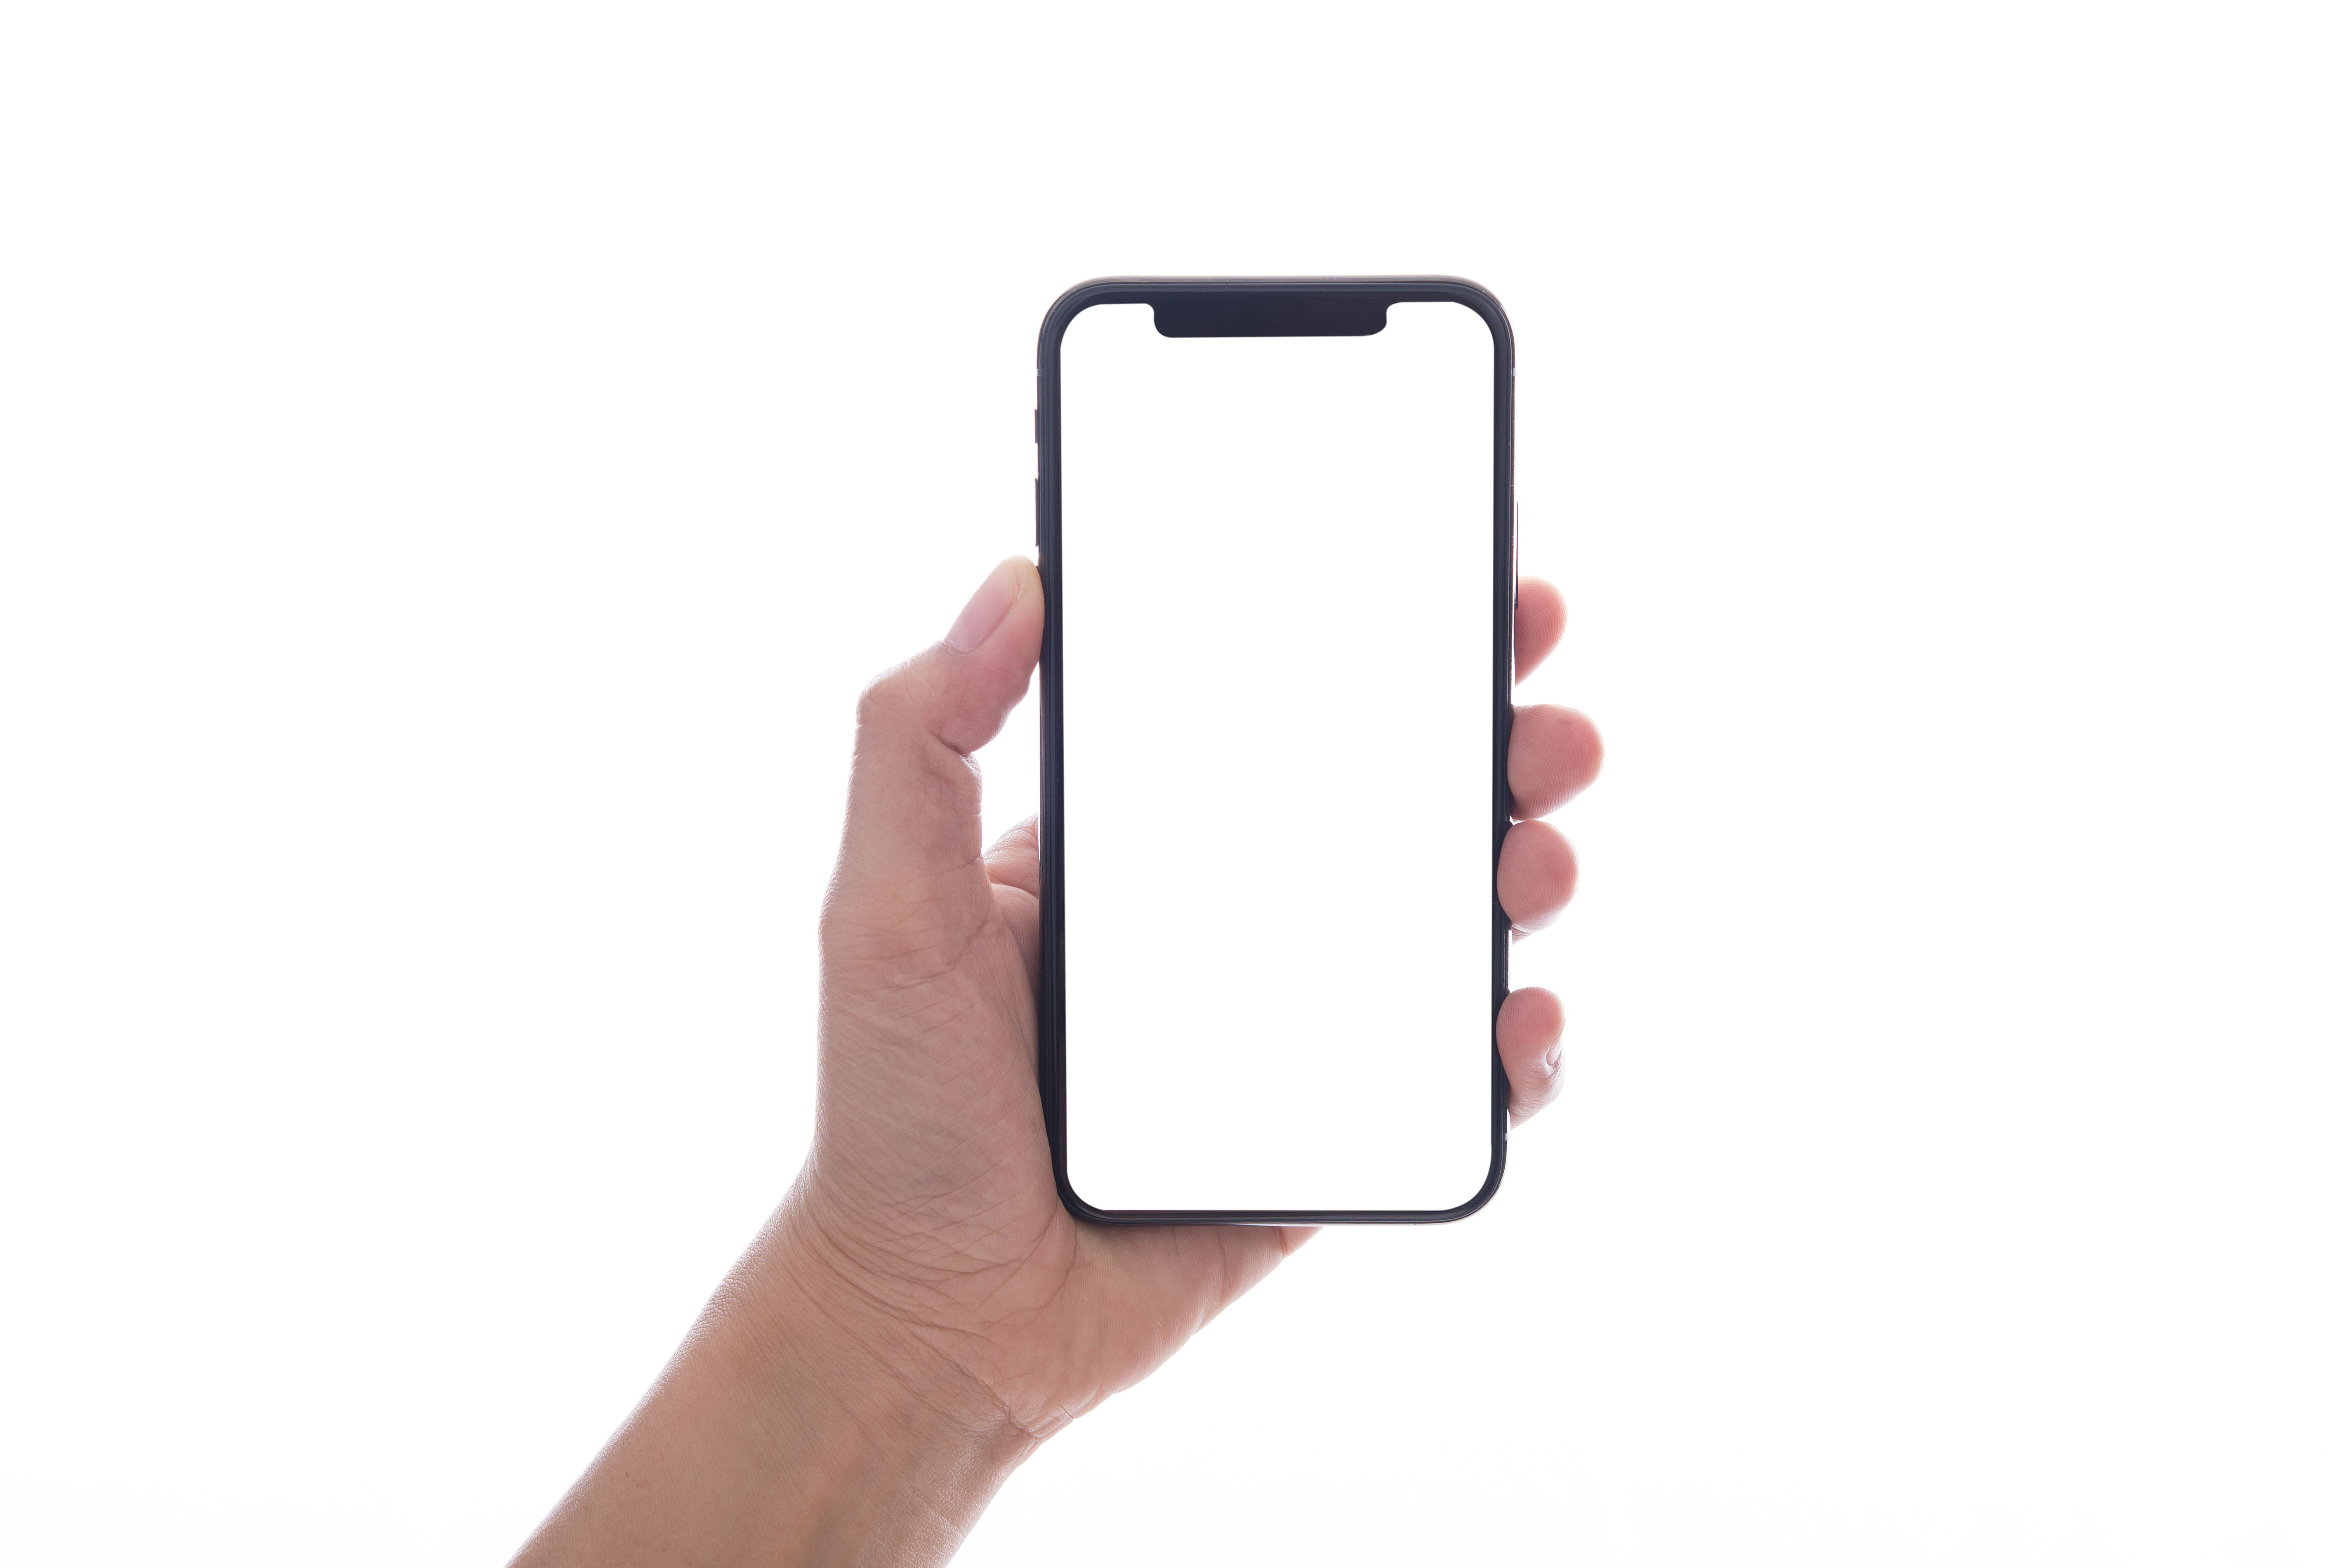 Apple iPhone 11 news, price, leaks, release date and everything we know so far